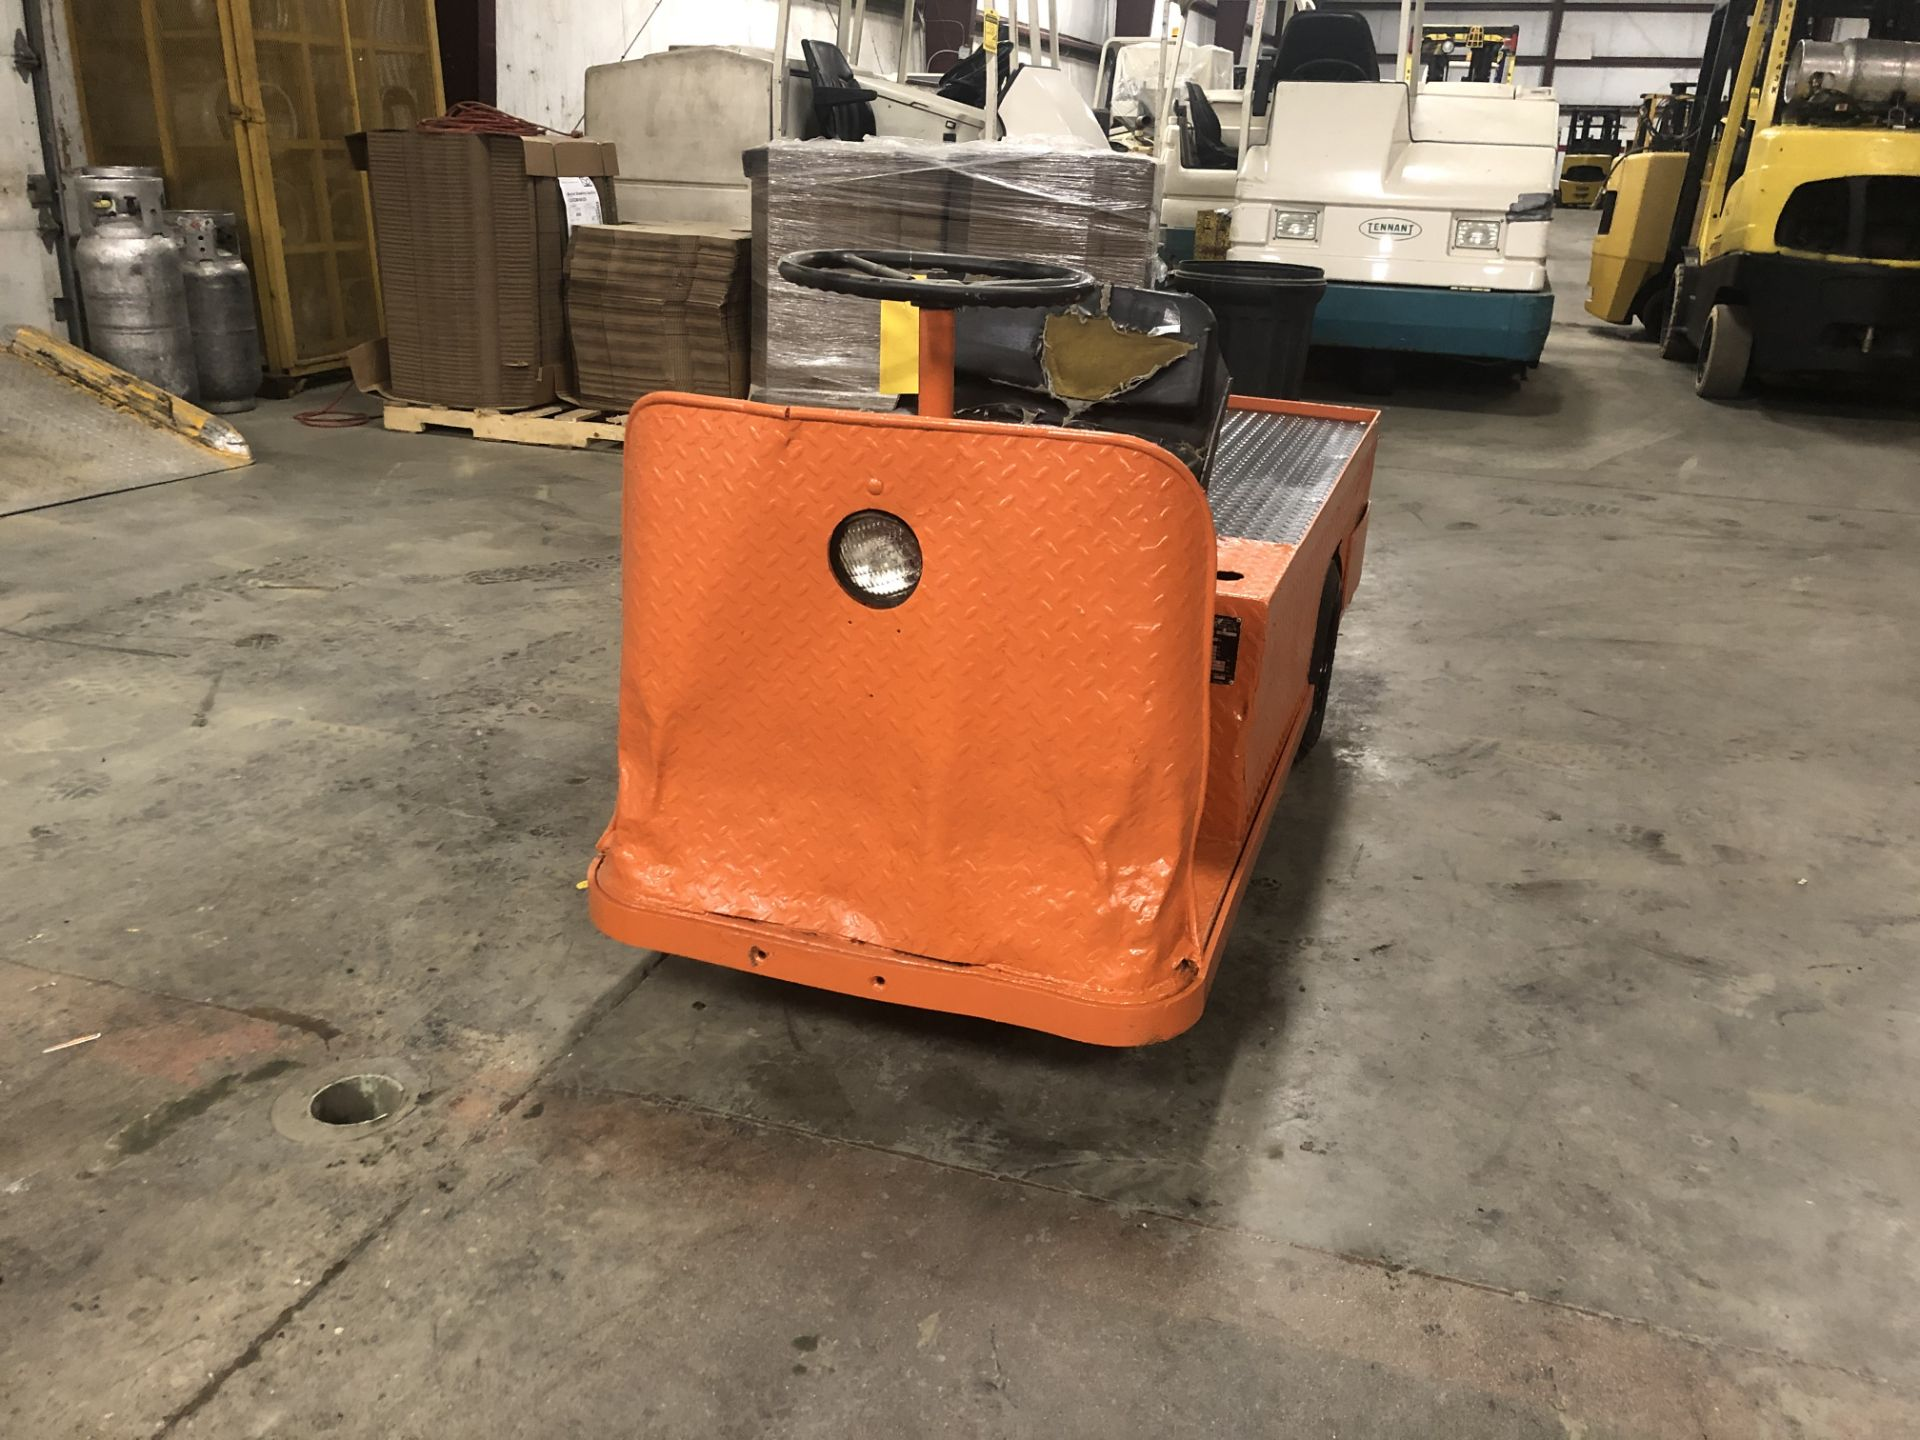 Lot 25 - 2007 TAYLOR-DUNN 3-WHEEL ELECTRIC PERSONNEL CART, ON-BOARD CHARGER, PNEUMATIC TIRES,450-LB. CAPACITY